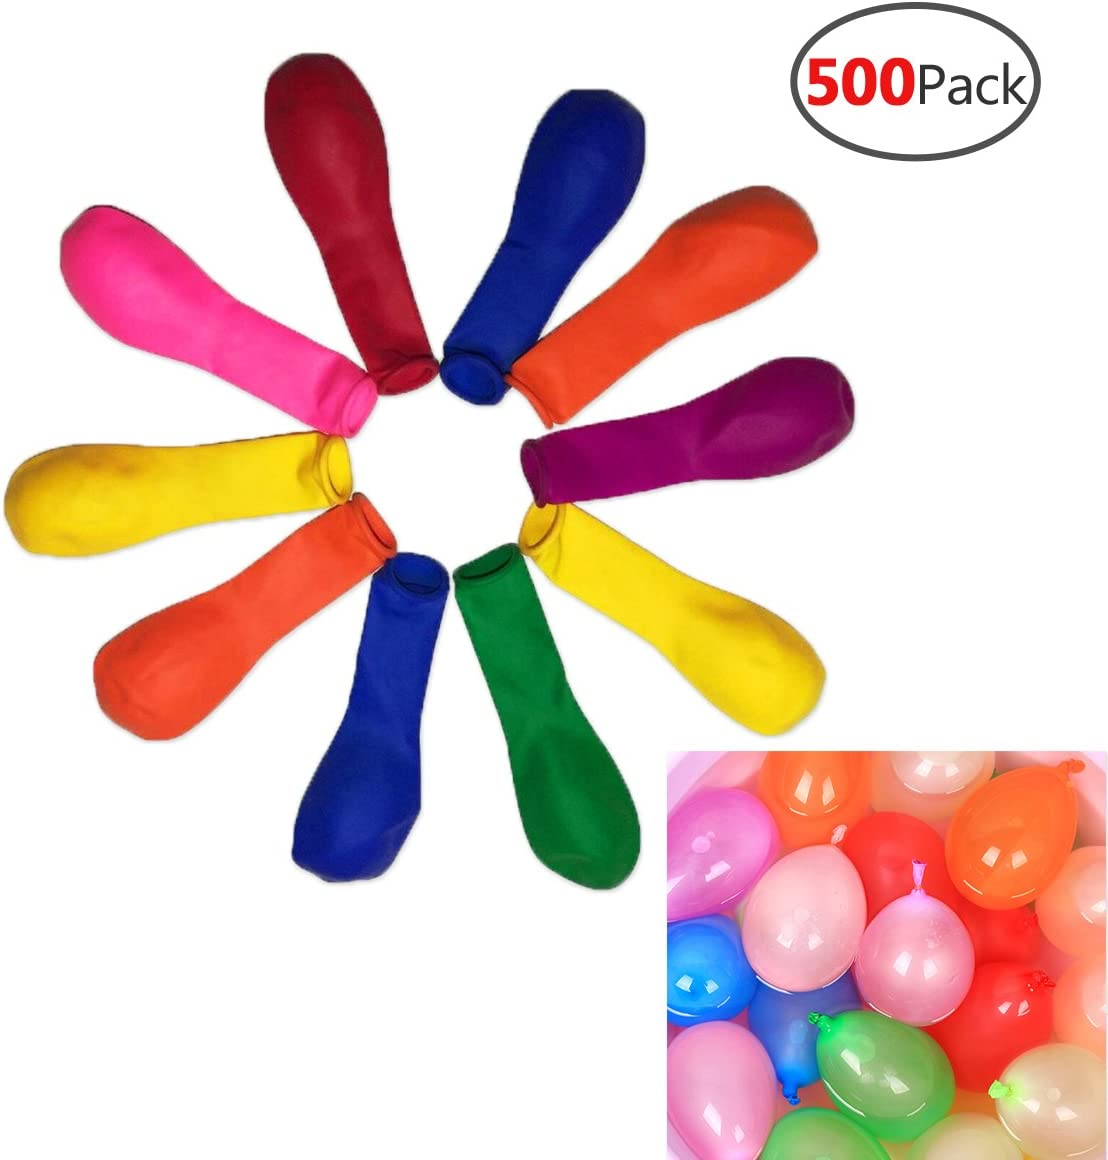 666 PCS Water Balloons Fun Water Party Games for Kids /& Adults-18 Bunches Splash Water Balloon Toys Colorful Air Balloons Rapid-Fill Air and Water